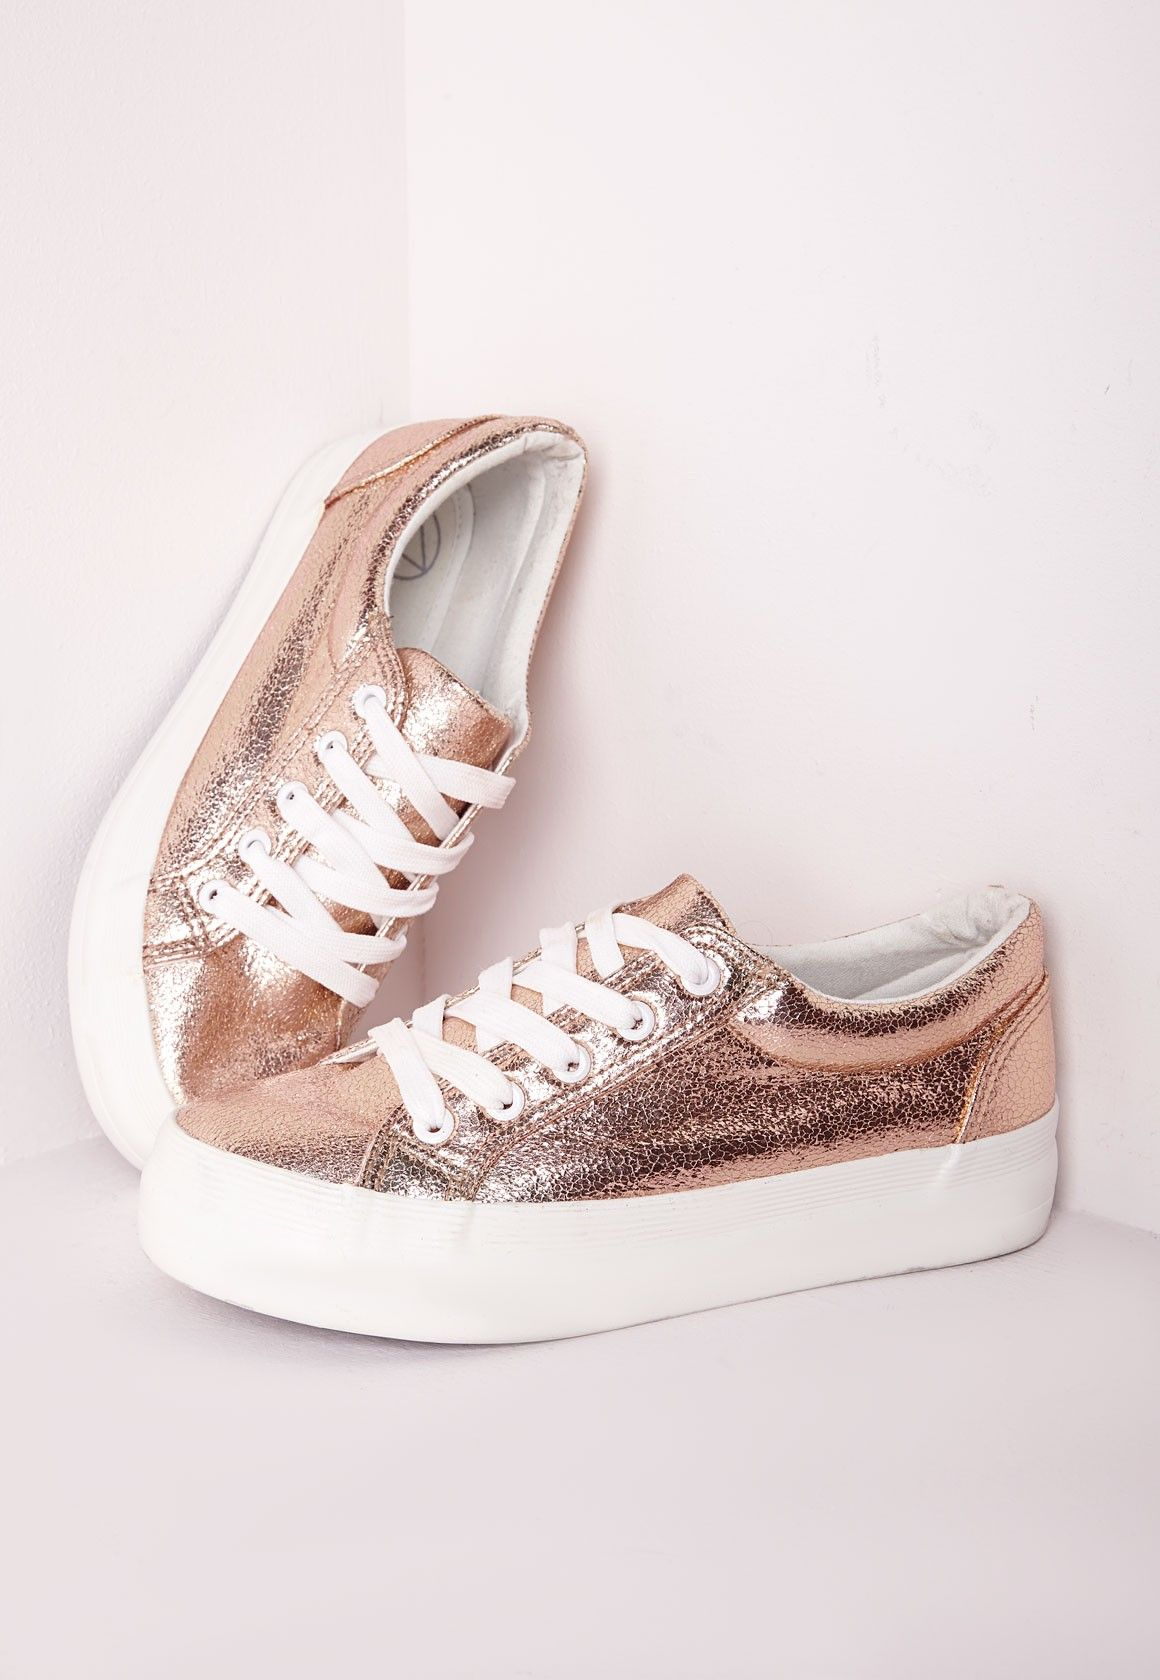 Chaussures Flat Or Metallic Pumps Rose Platform qAY8R1